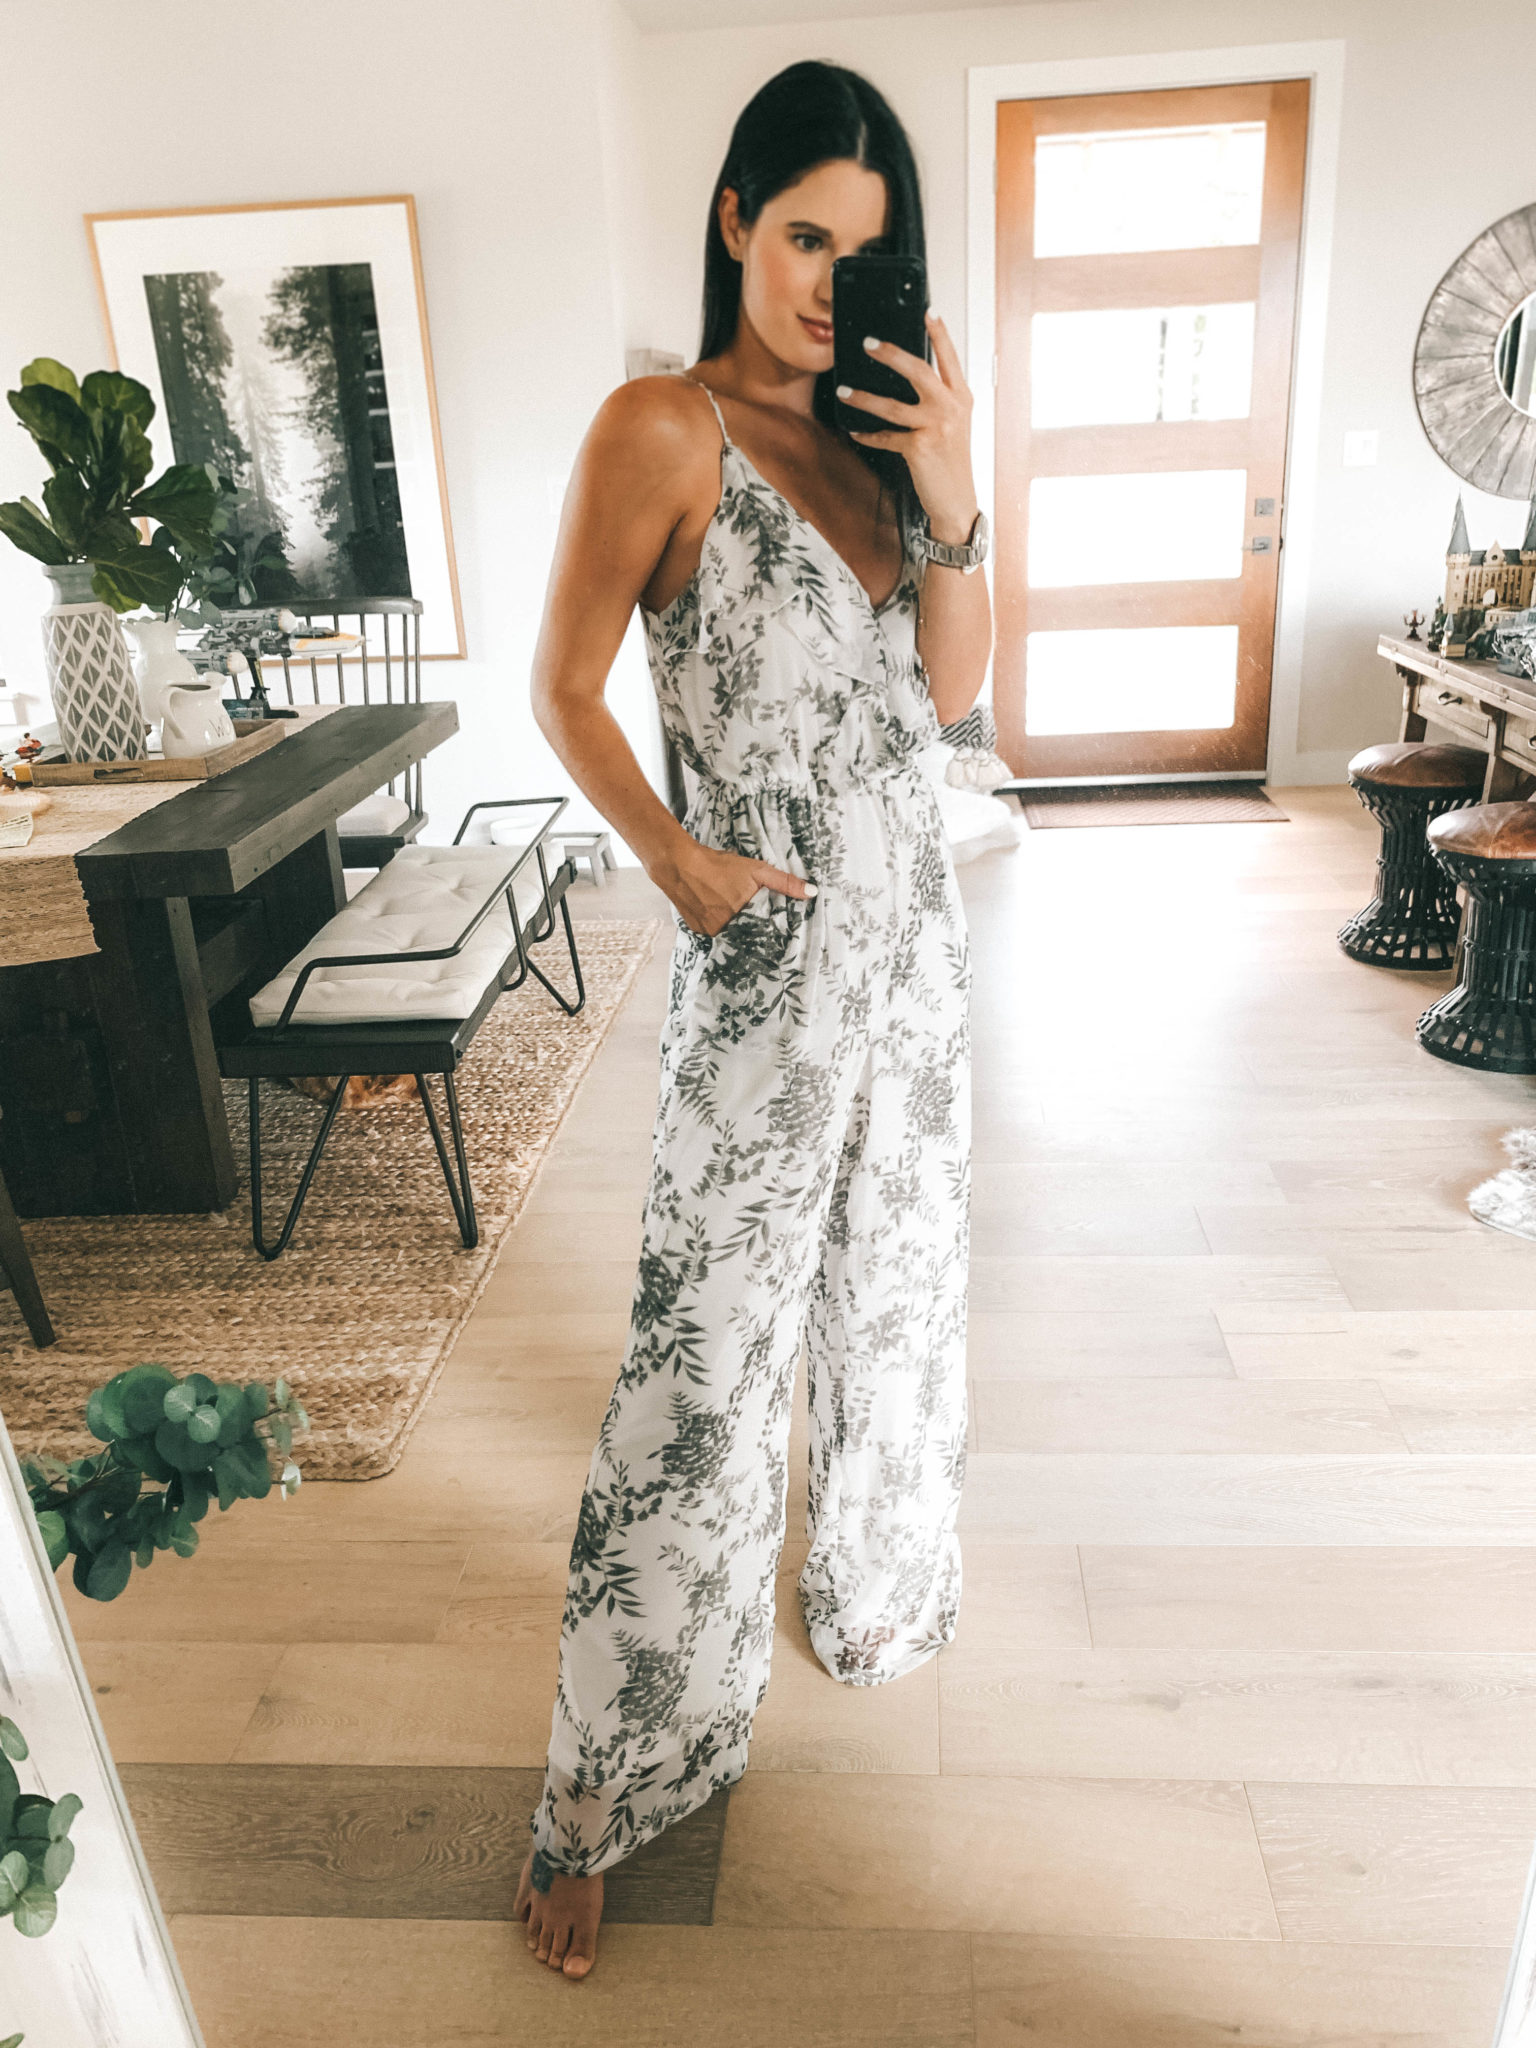 Amaryllis Apparel Abroad Turks & Caicos Summer Try-On by popular Austin fashion blog, Dressed to Kill: image of a woman wearing an Amaryllis Apparel Garden Noir Jumpsuit.